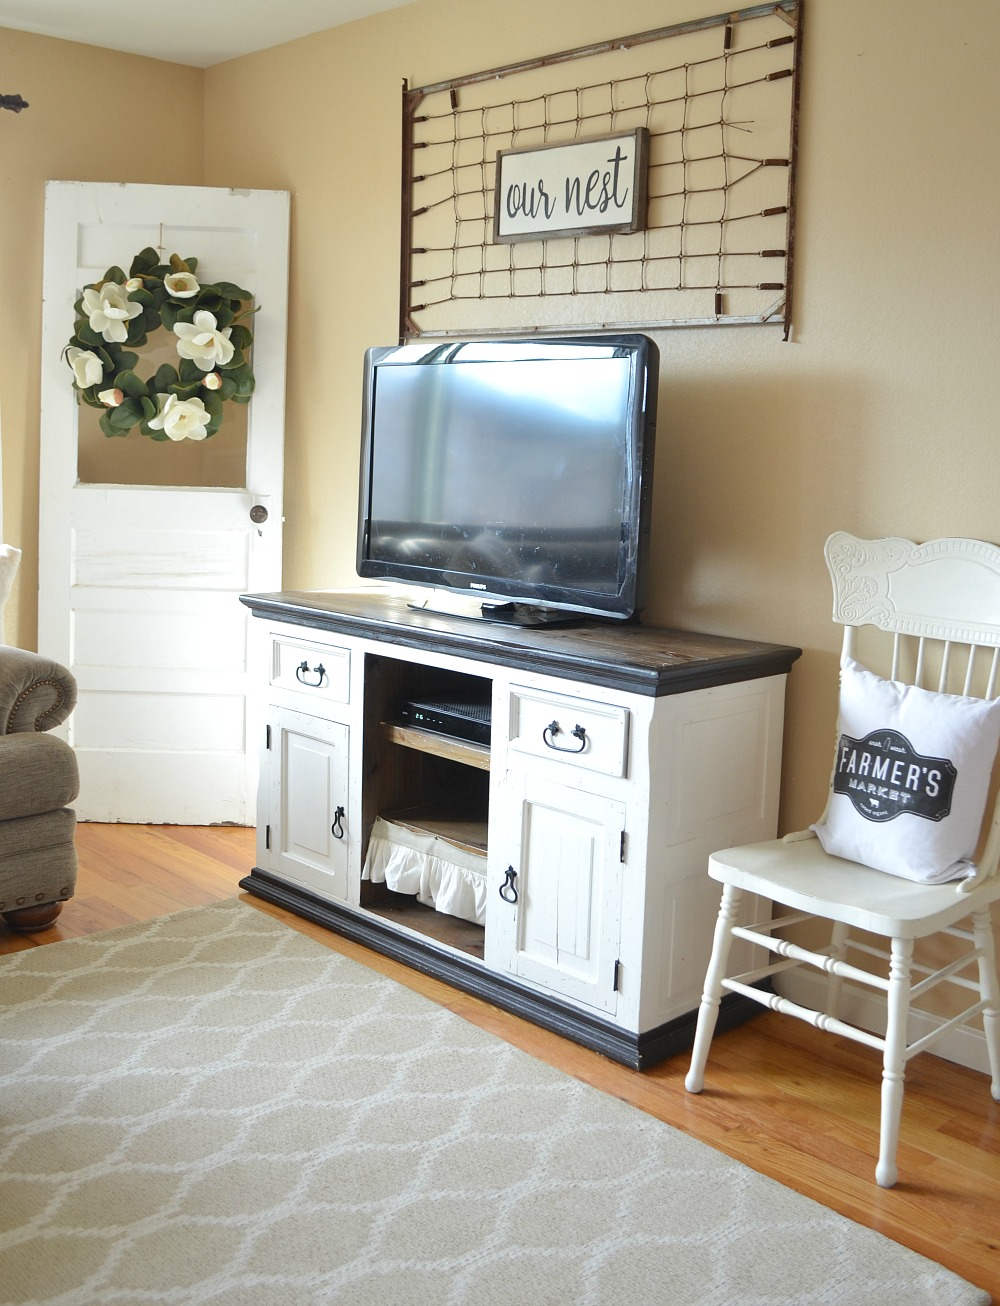 Refreshed Modern Farmhouse Living Room. Vintage Inspired Idea To Decorate  Around The TV.